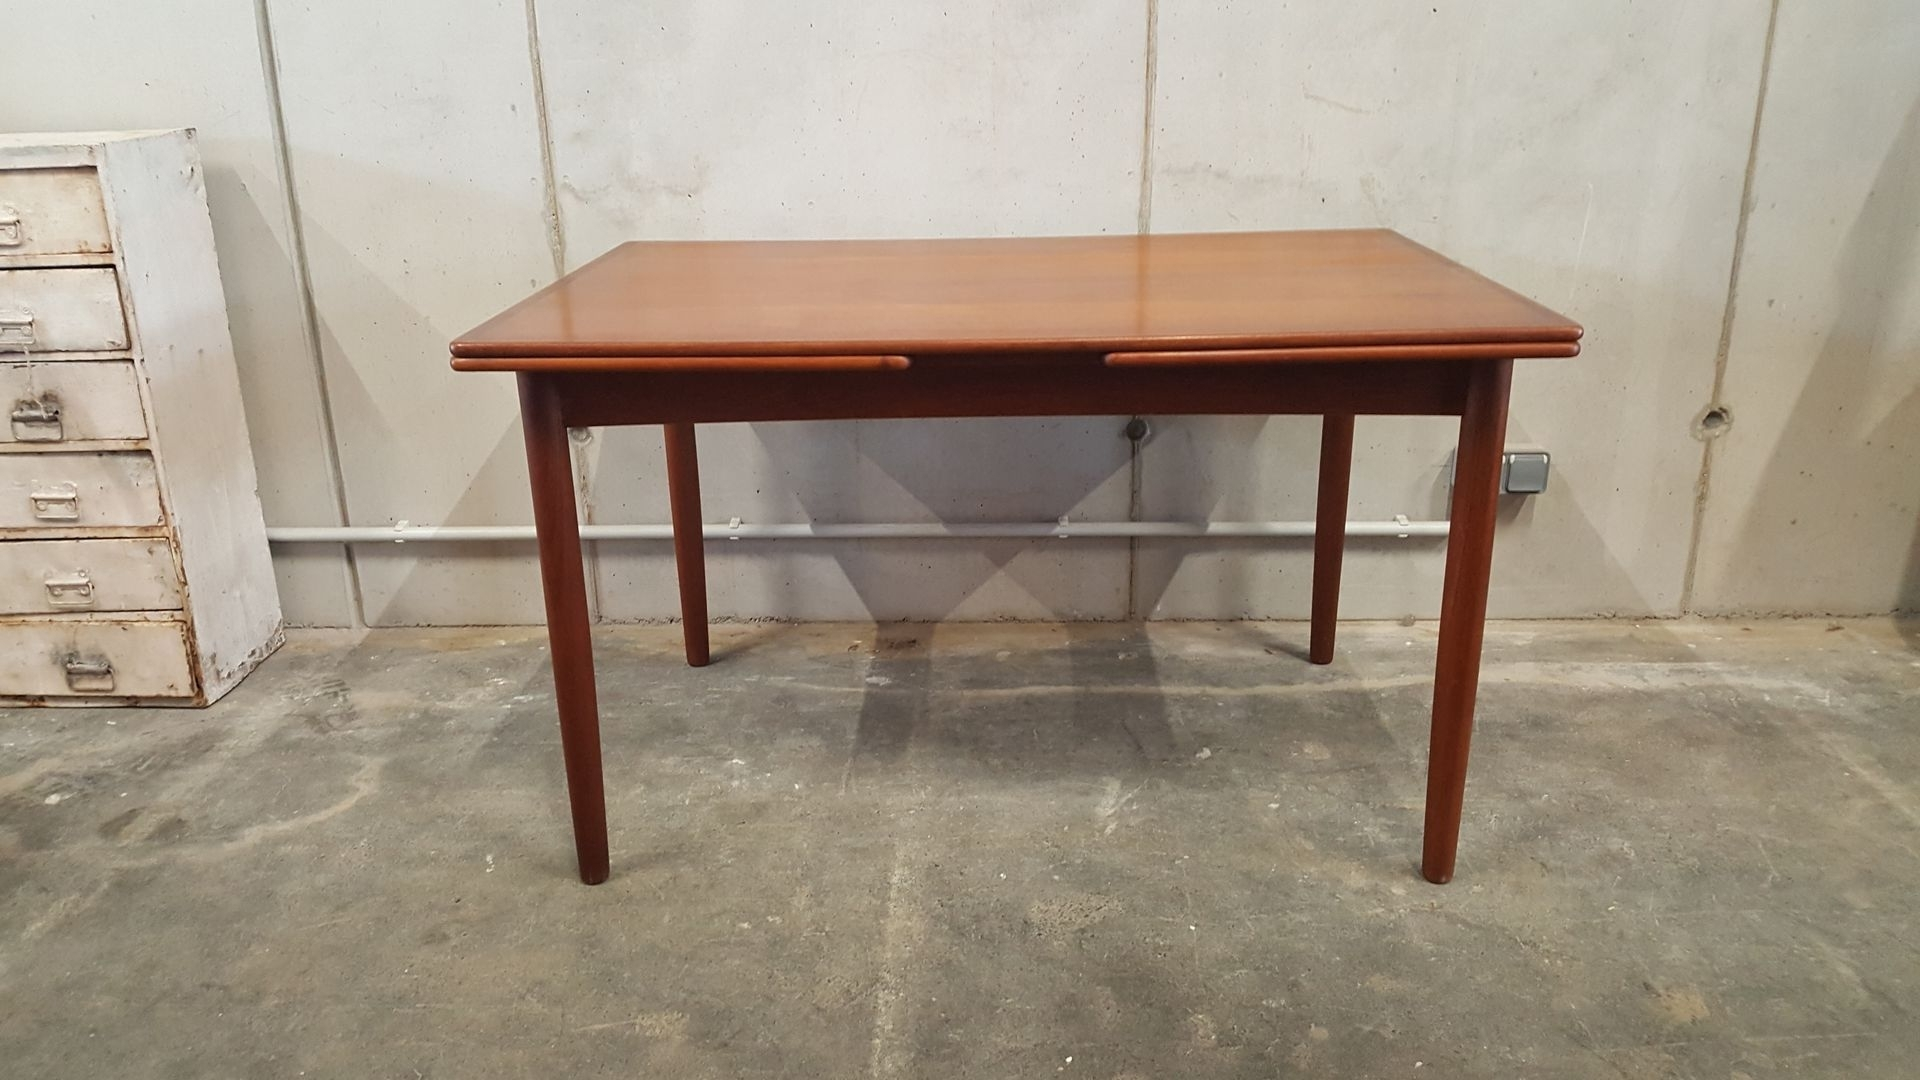 Famous Vintage Teak Extendable Dining Table, 1960S For Sale At Pamono Throughout Extendable Dining Tables (View 23 of 25)